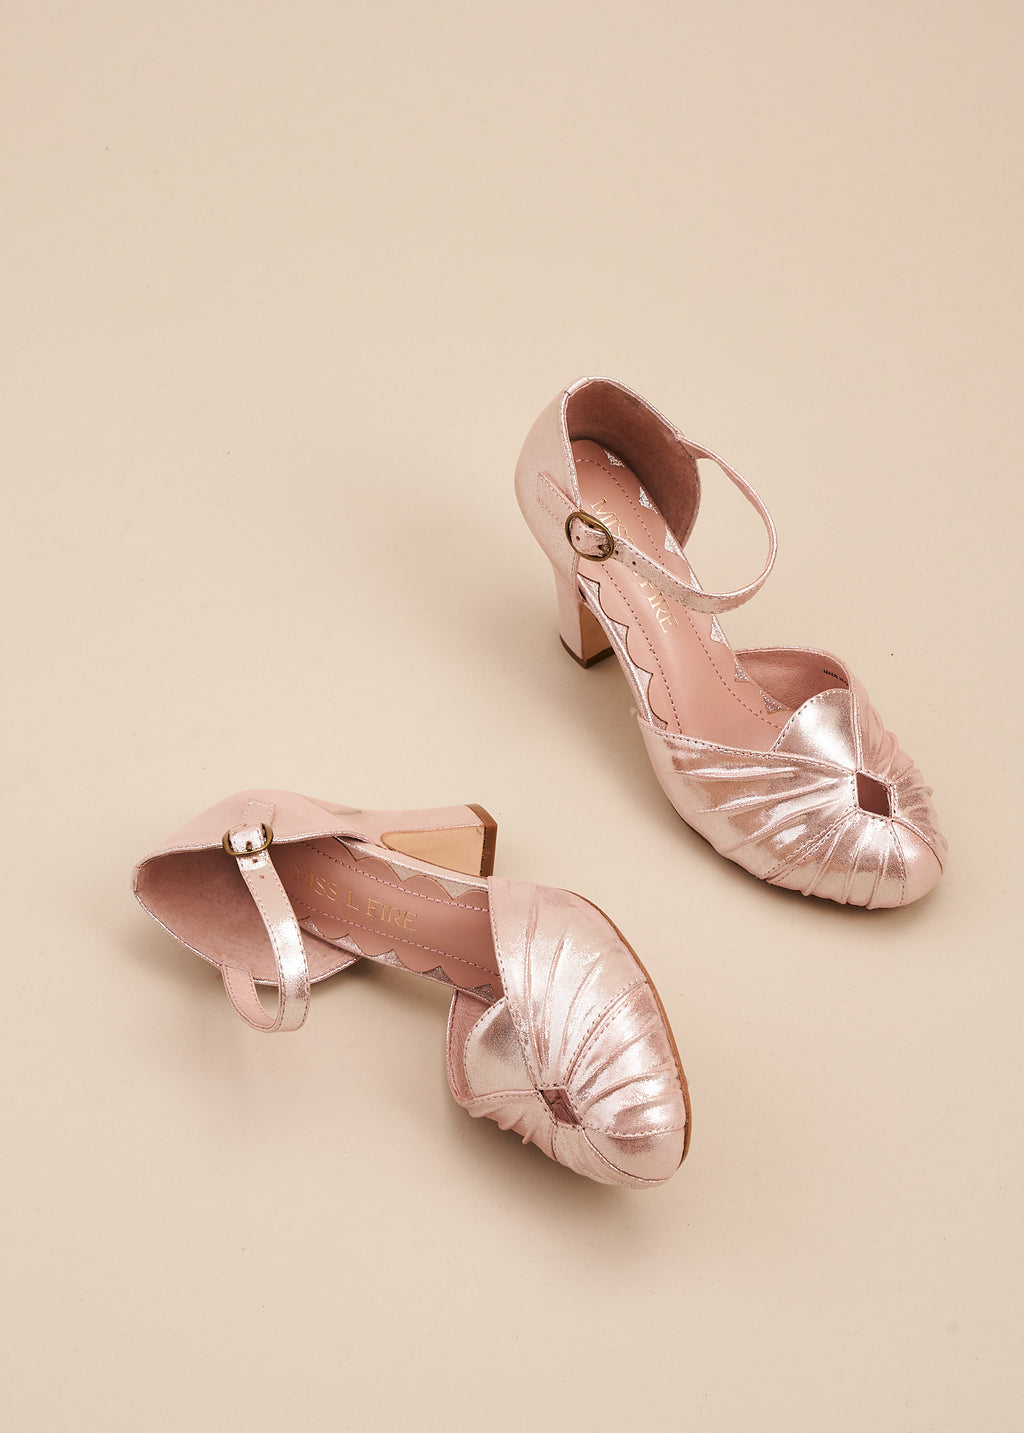 Amber in gorgeous copper pink sparkle suede by Miss L Fire, is a vintage inspired 2 part bar shoe with ruched detail on the toe and adjustable strap.